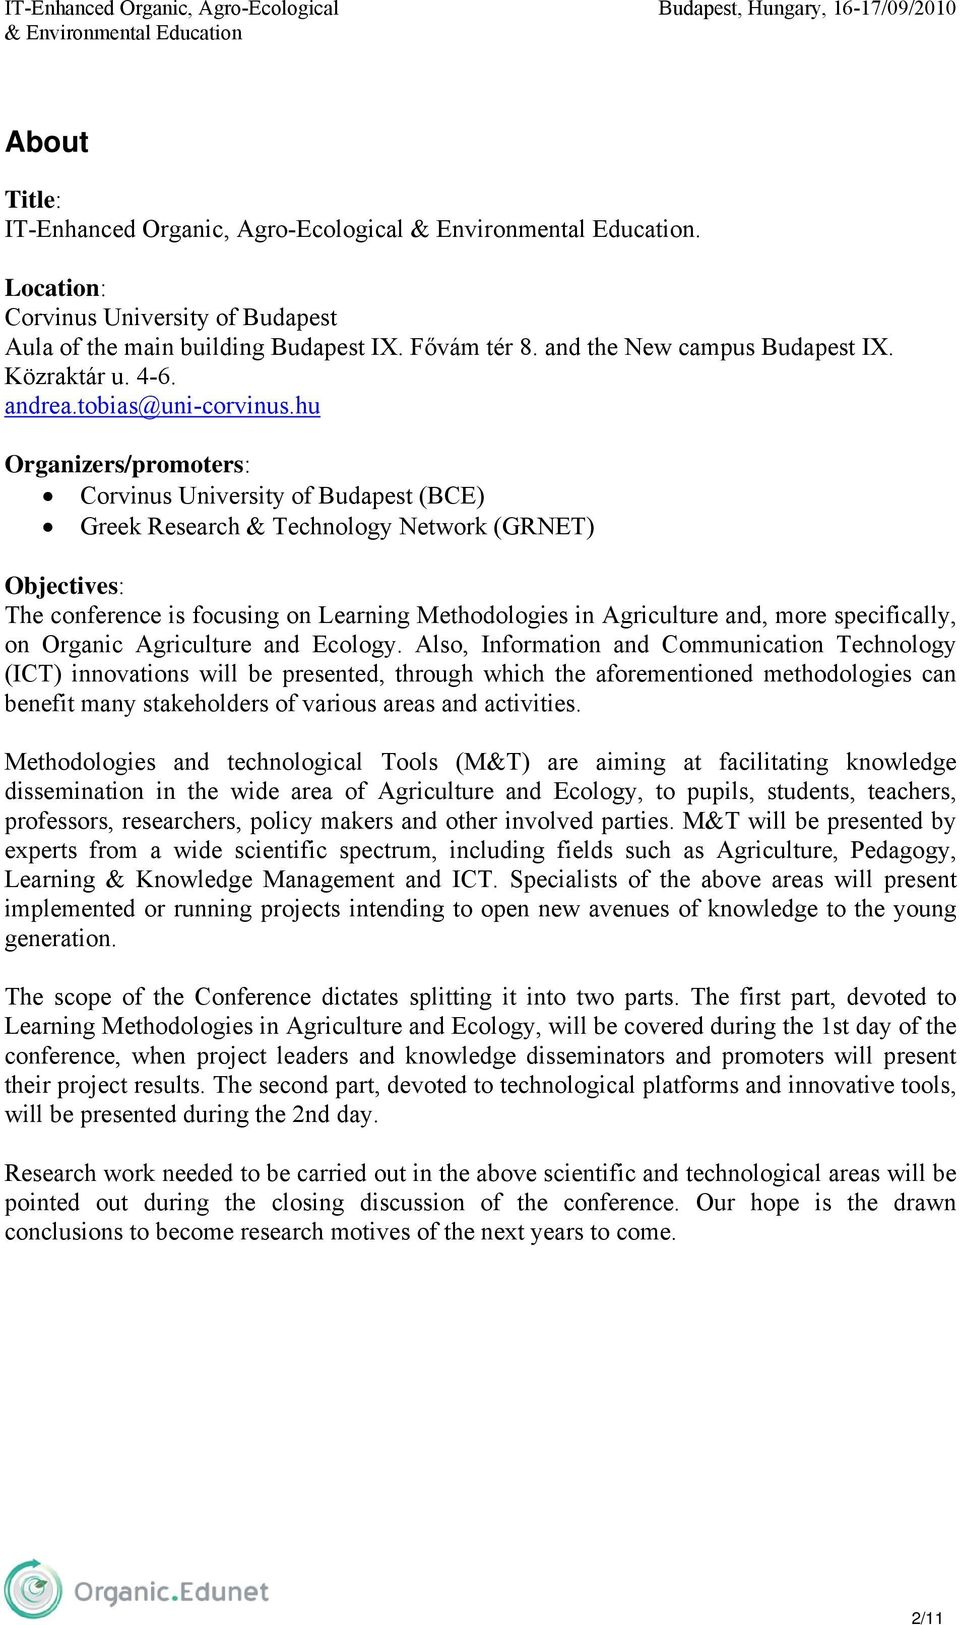 hu Organizers/promoters: Corvinus University of Budapest (BCE) Greek Research & Technology Network (GRNET) Objectives: The conference is focusing on Learning Methodologies in Agriculture and, more